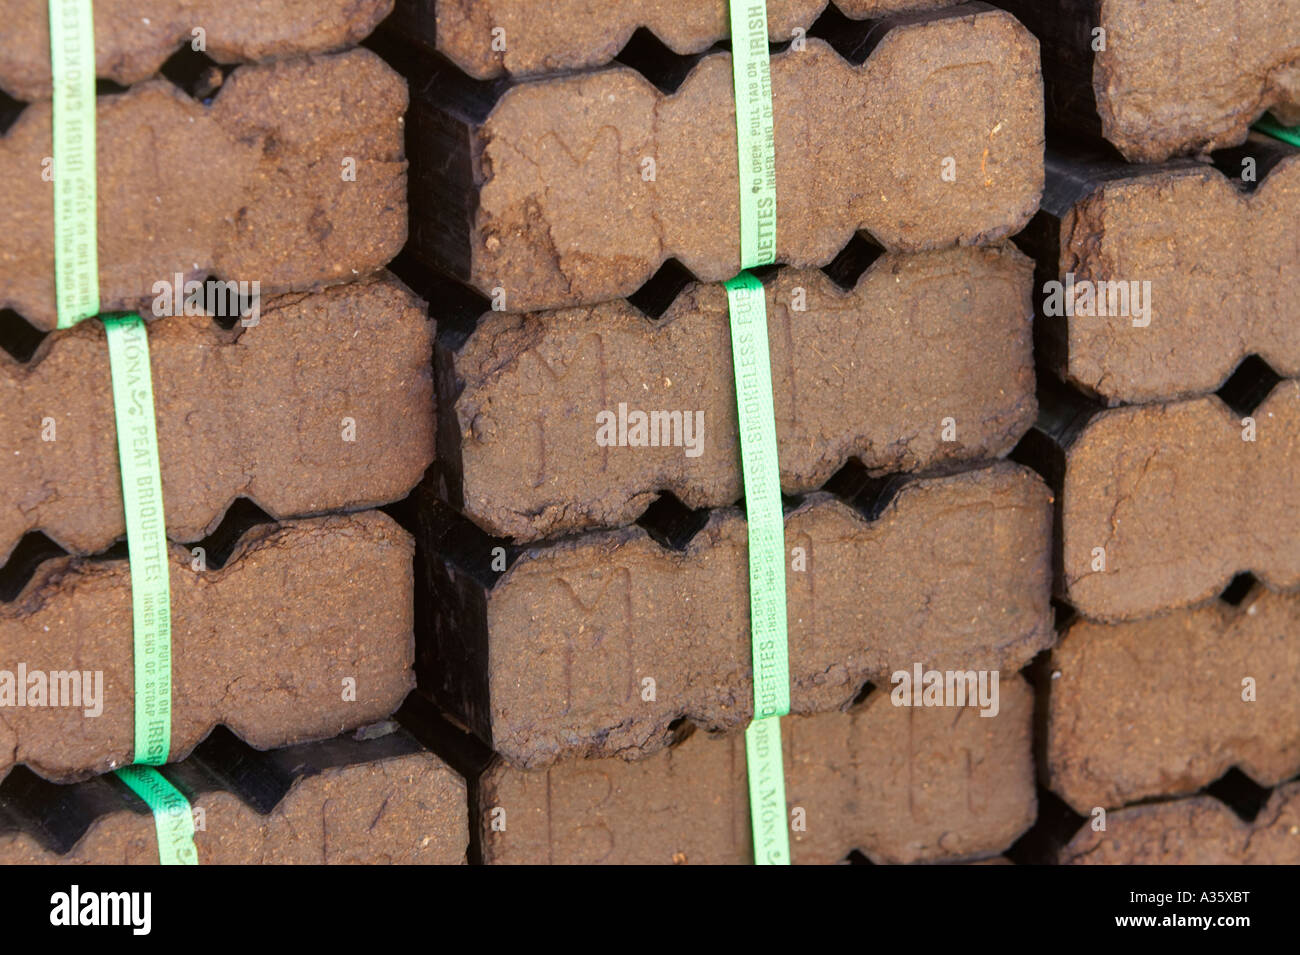 peat turf briquettes in a pile for sale in dublin - Stock Image